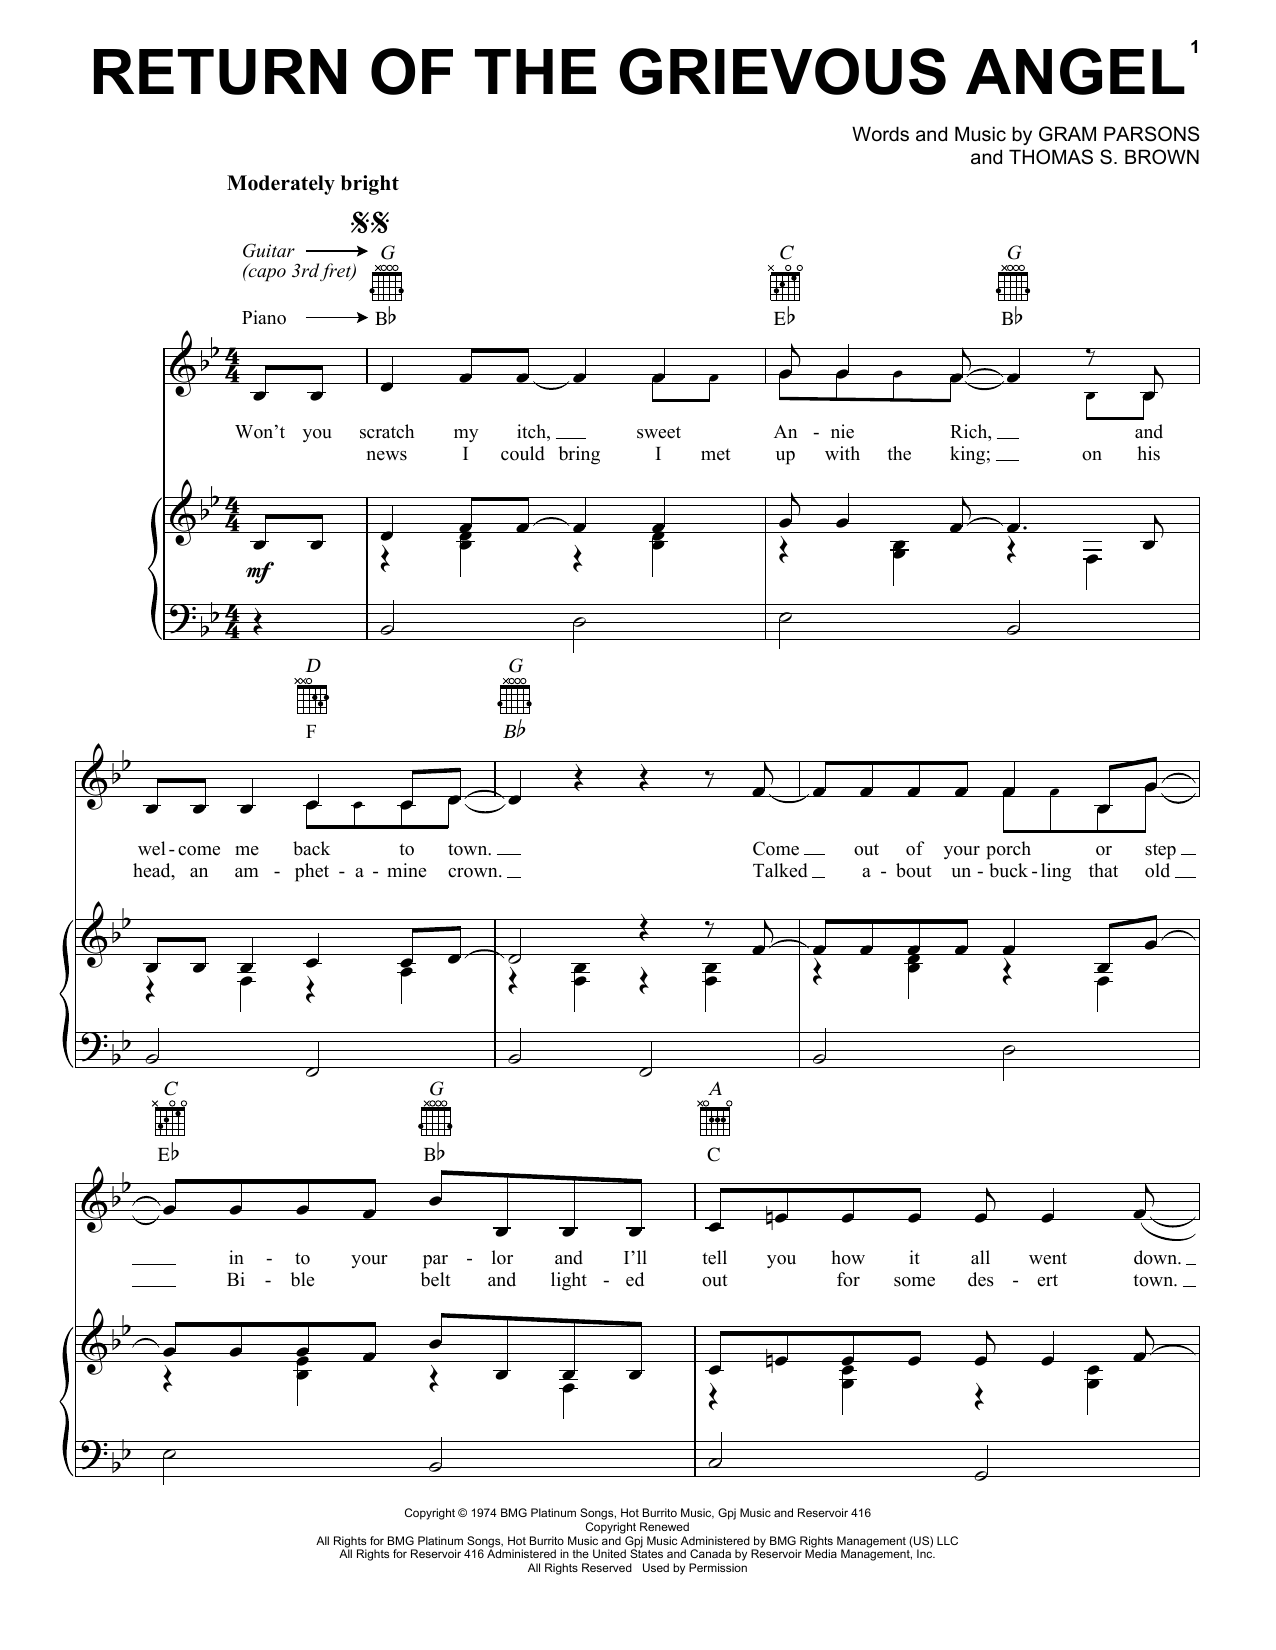 Gram Parsons Return Of The Grievous Angel sheet music notes and chords. Download Printable PDF.